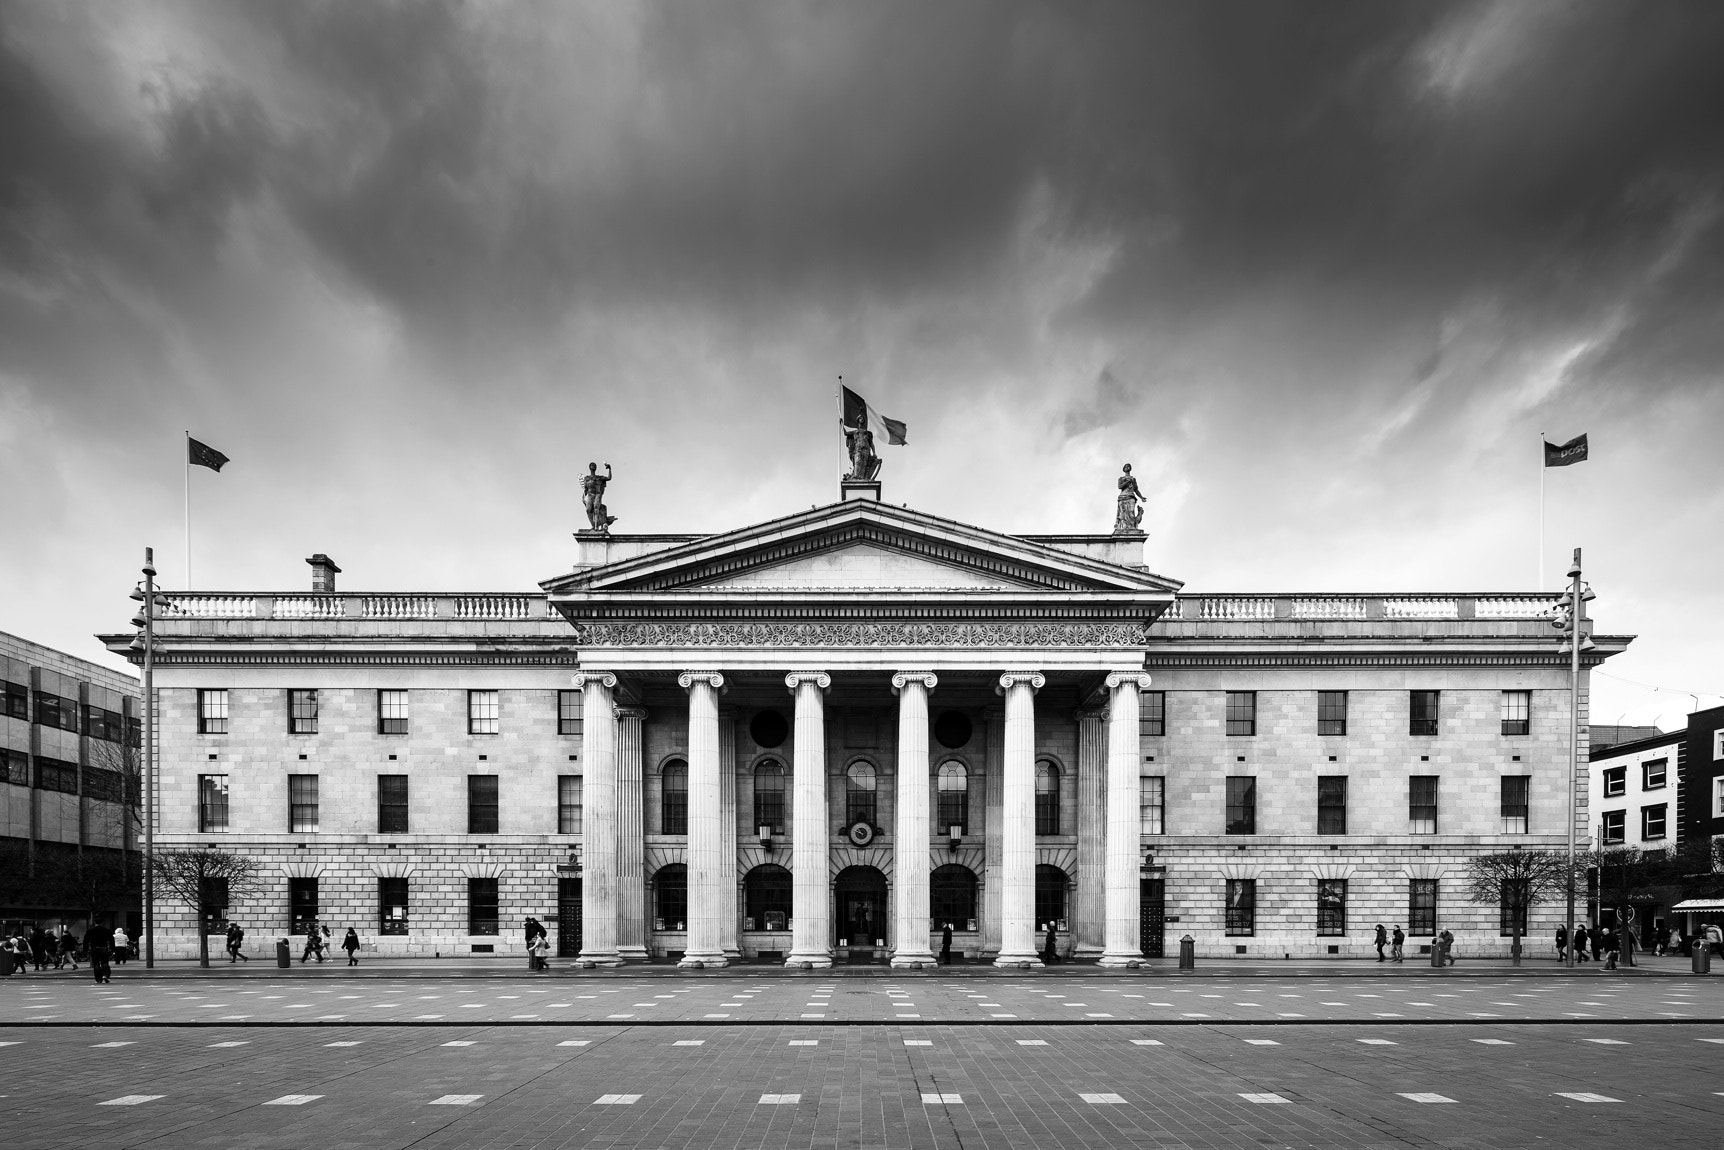 Photograph The GPO by Richie Hatch on 500px